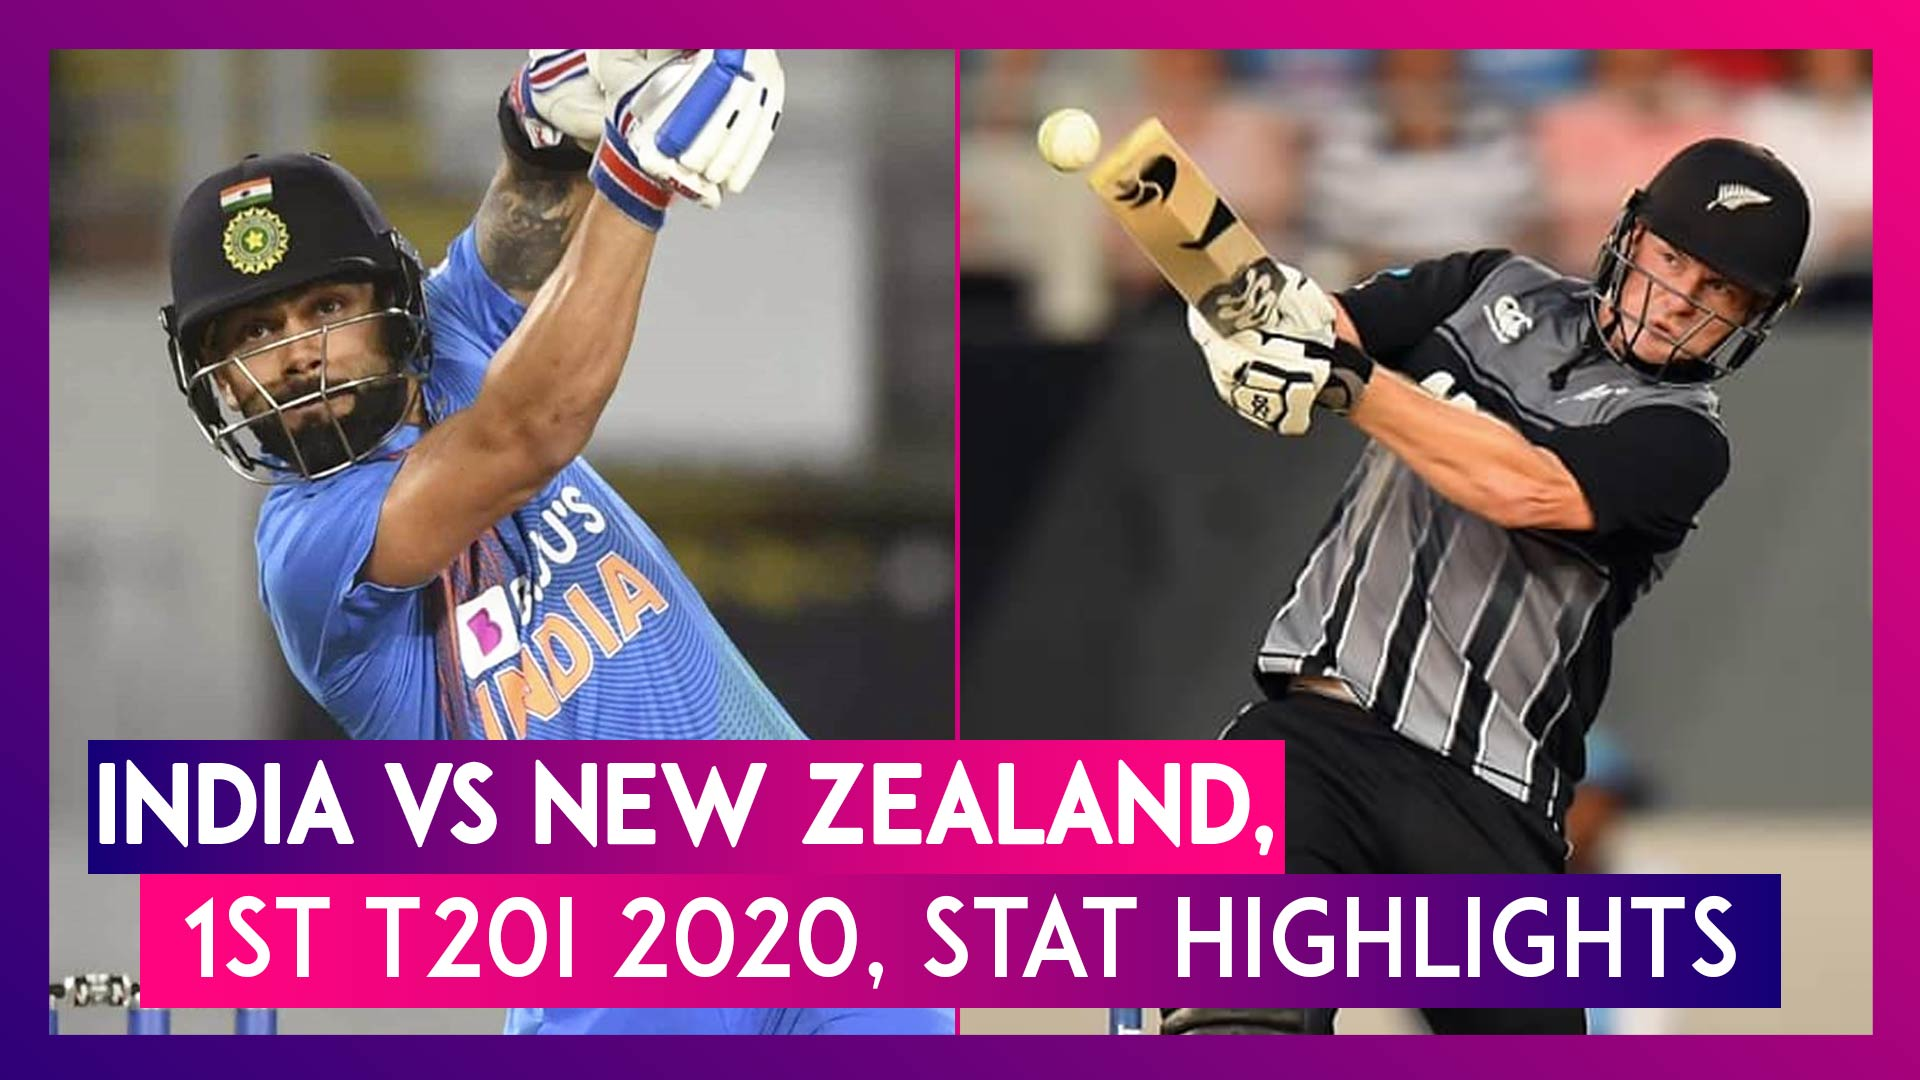 IND vs NZ Stat Highlights, 1st T20I 2020: India Beat New Zealand To Go One Up In Series